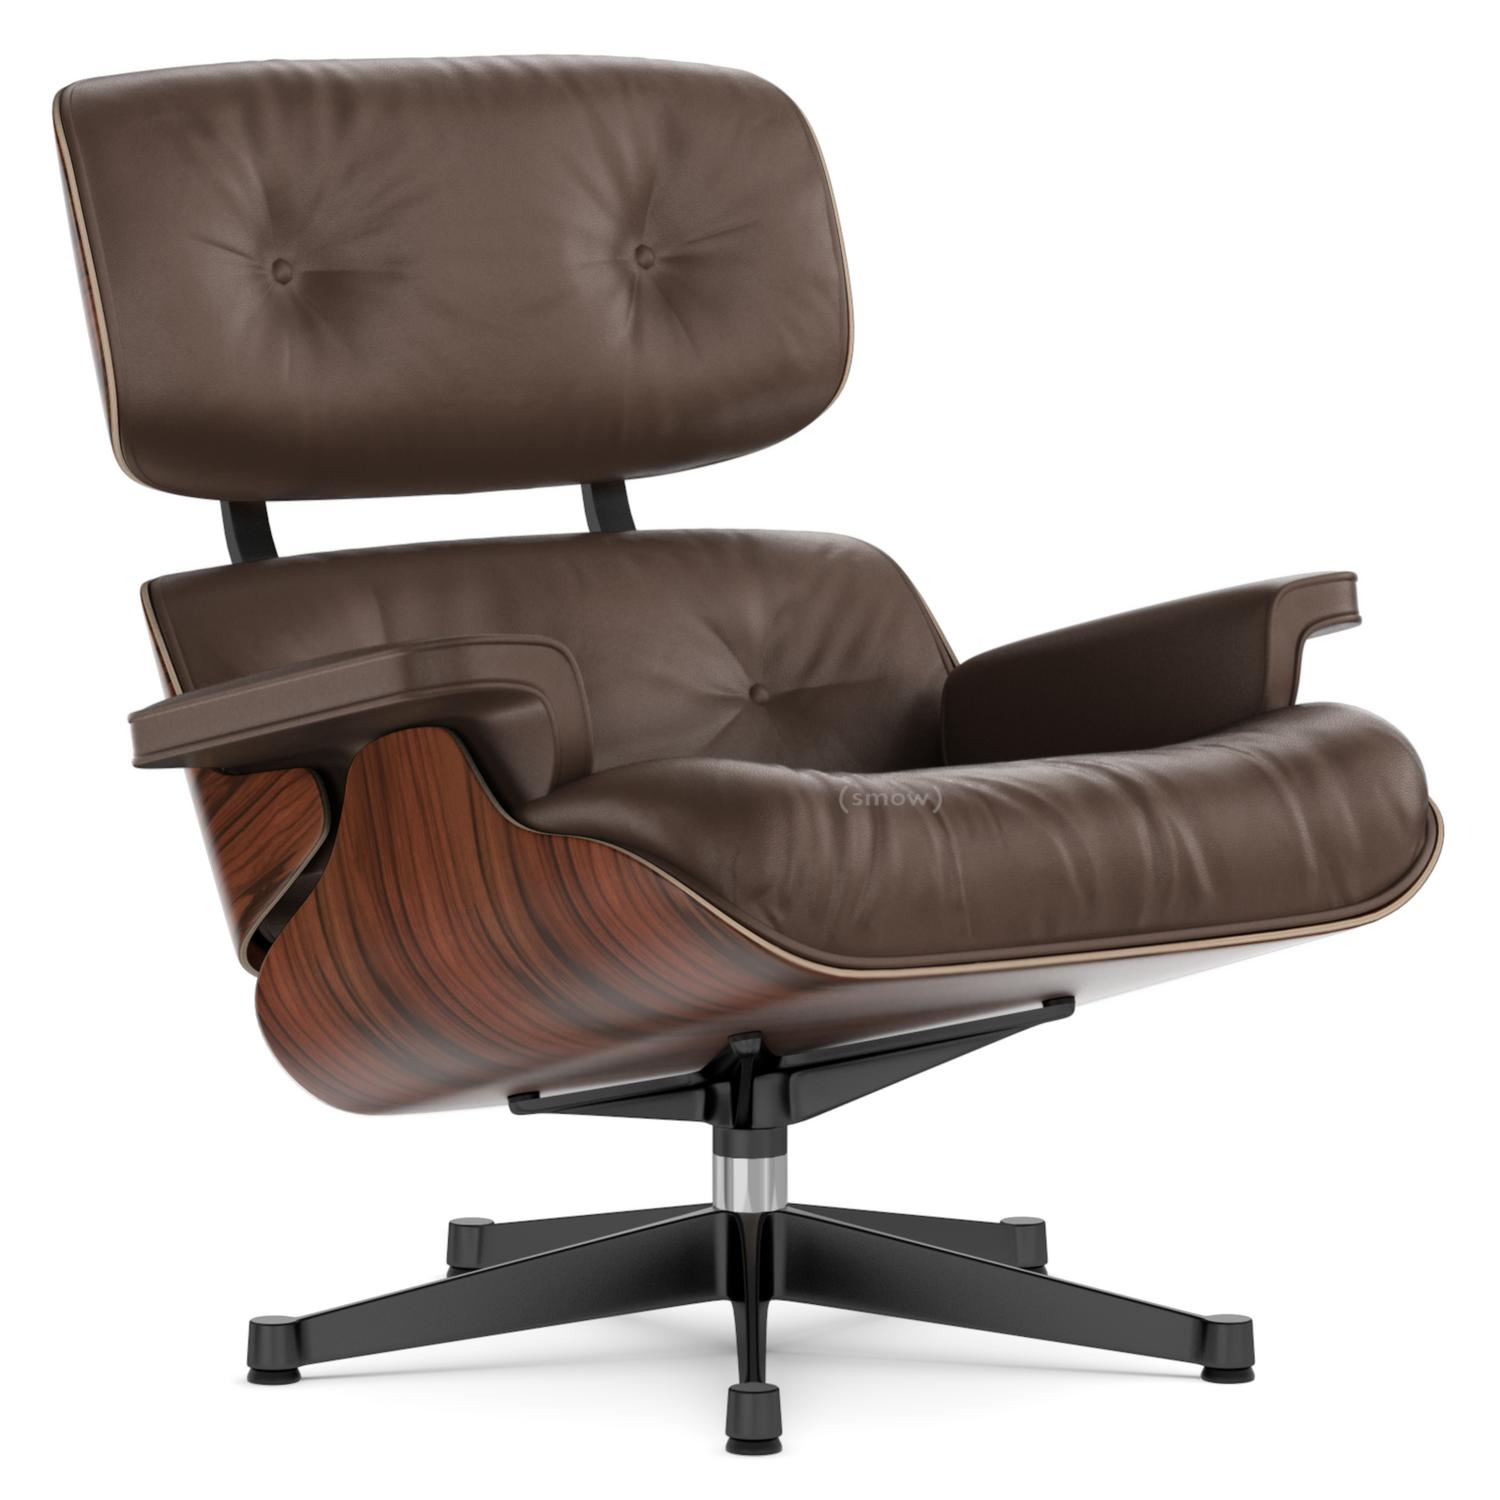 Charles Eames Stuhl Original Vitra Lounge Chair Santos Palisander Brown 84 Cm Original Height 1956 Aluminium Polished Sides Black